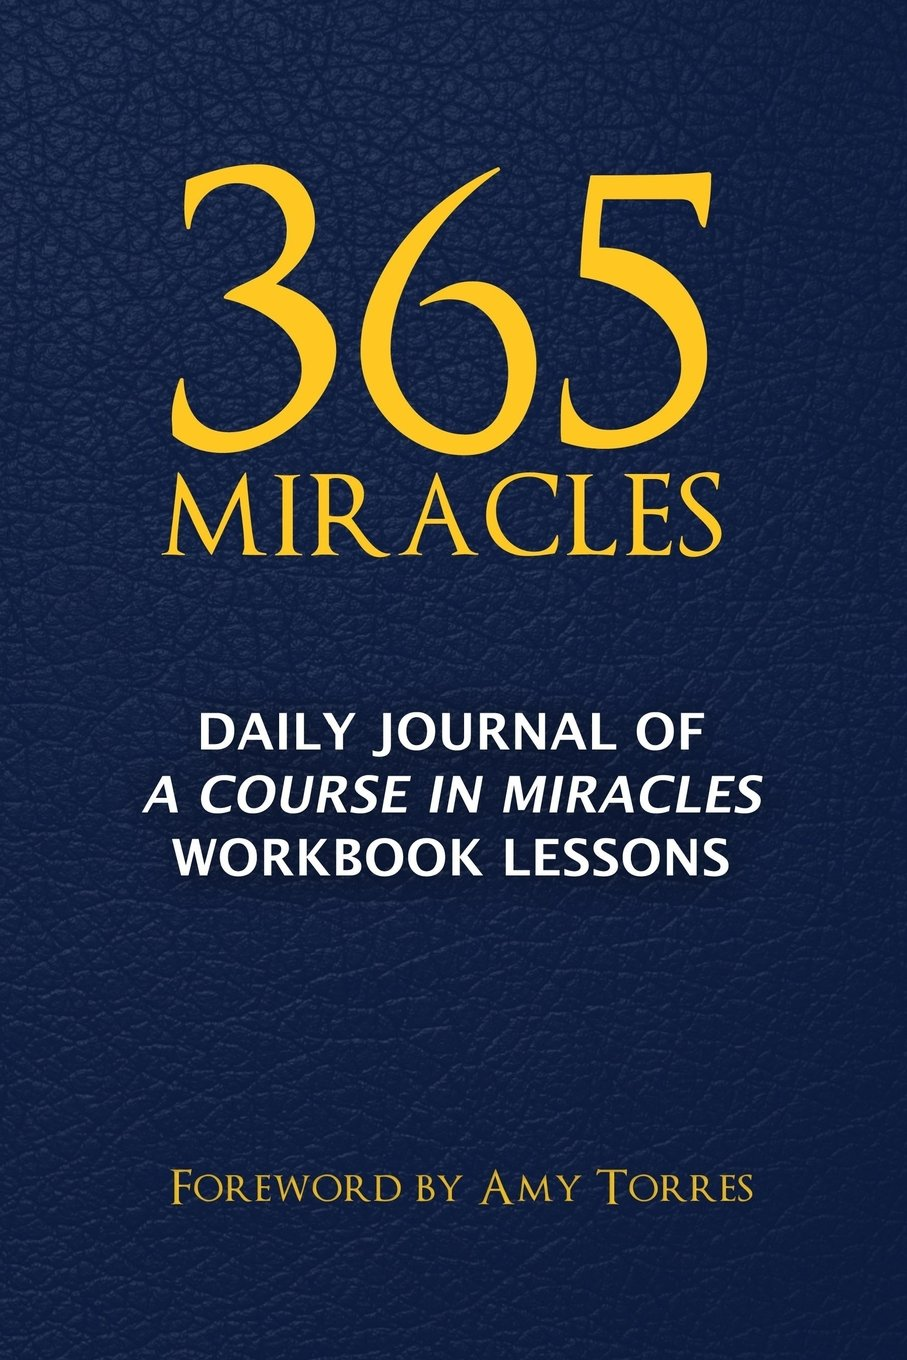 365 Miracles: Daily Journal of A Course In Miracles Workbook Lessons:  MindPress Media, Amy Torres: 9780989491228: Amazon.com: Books